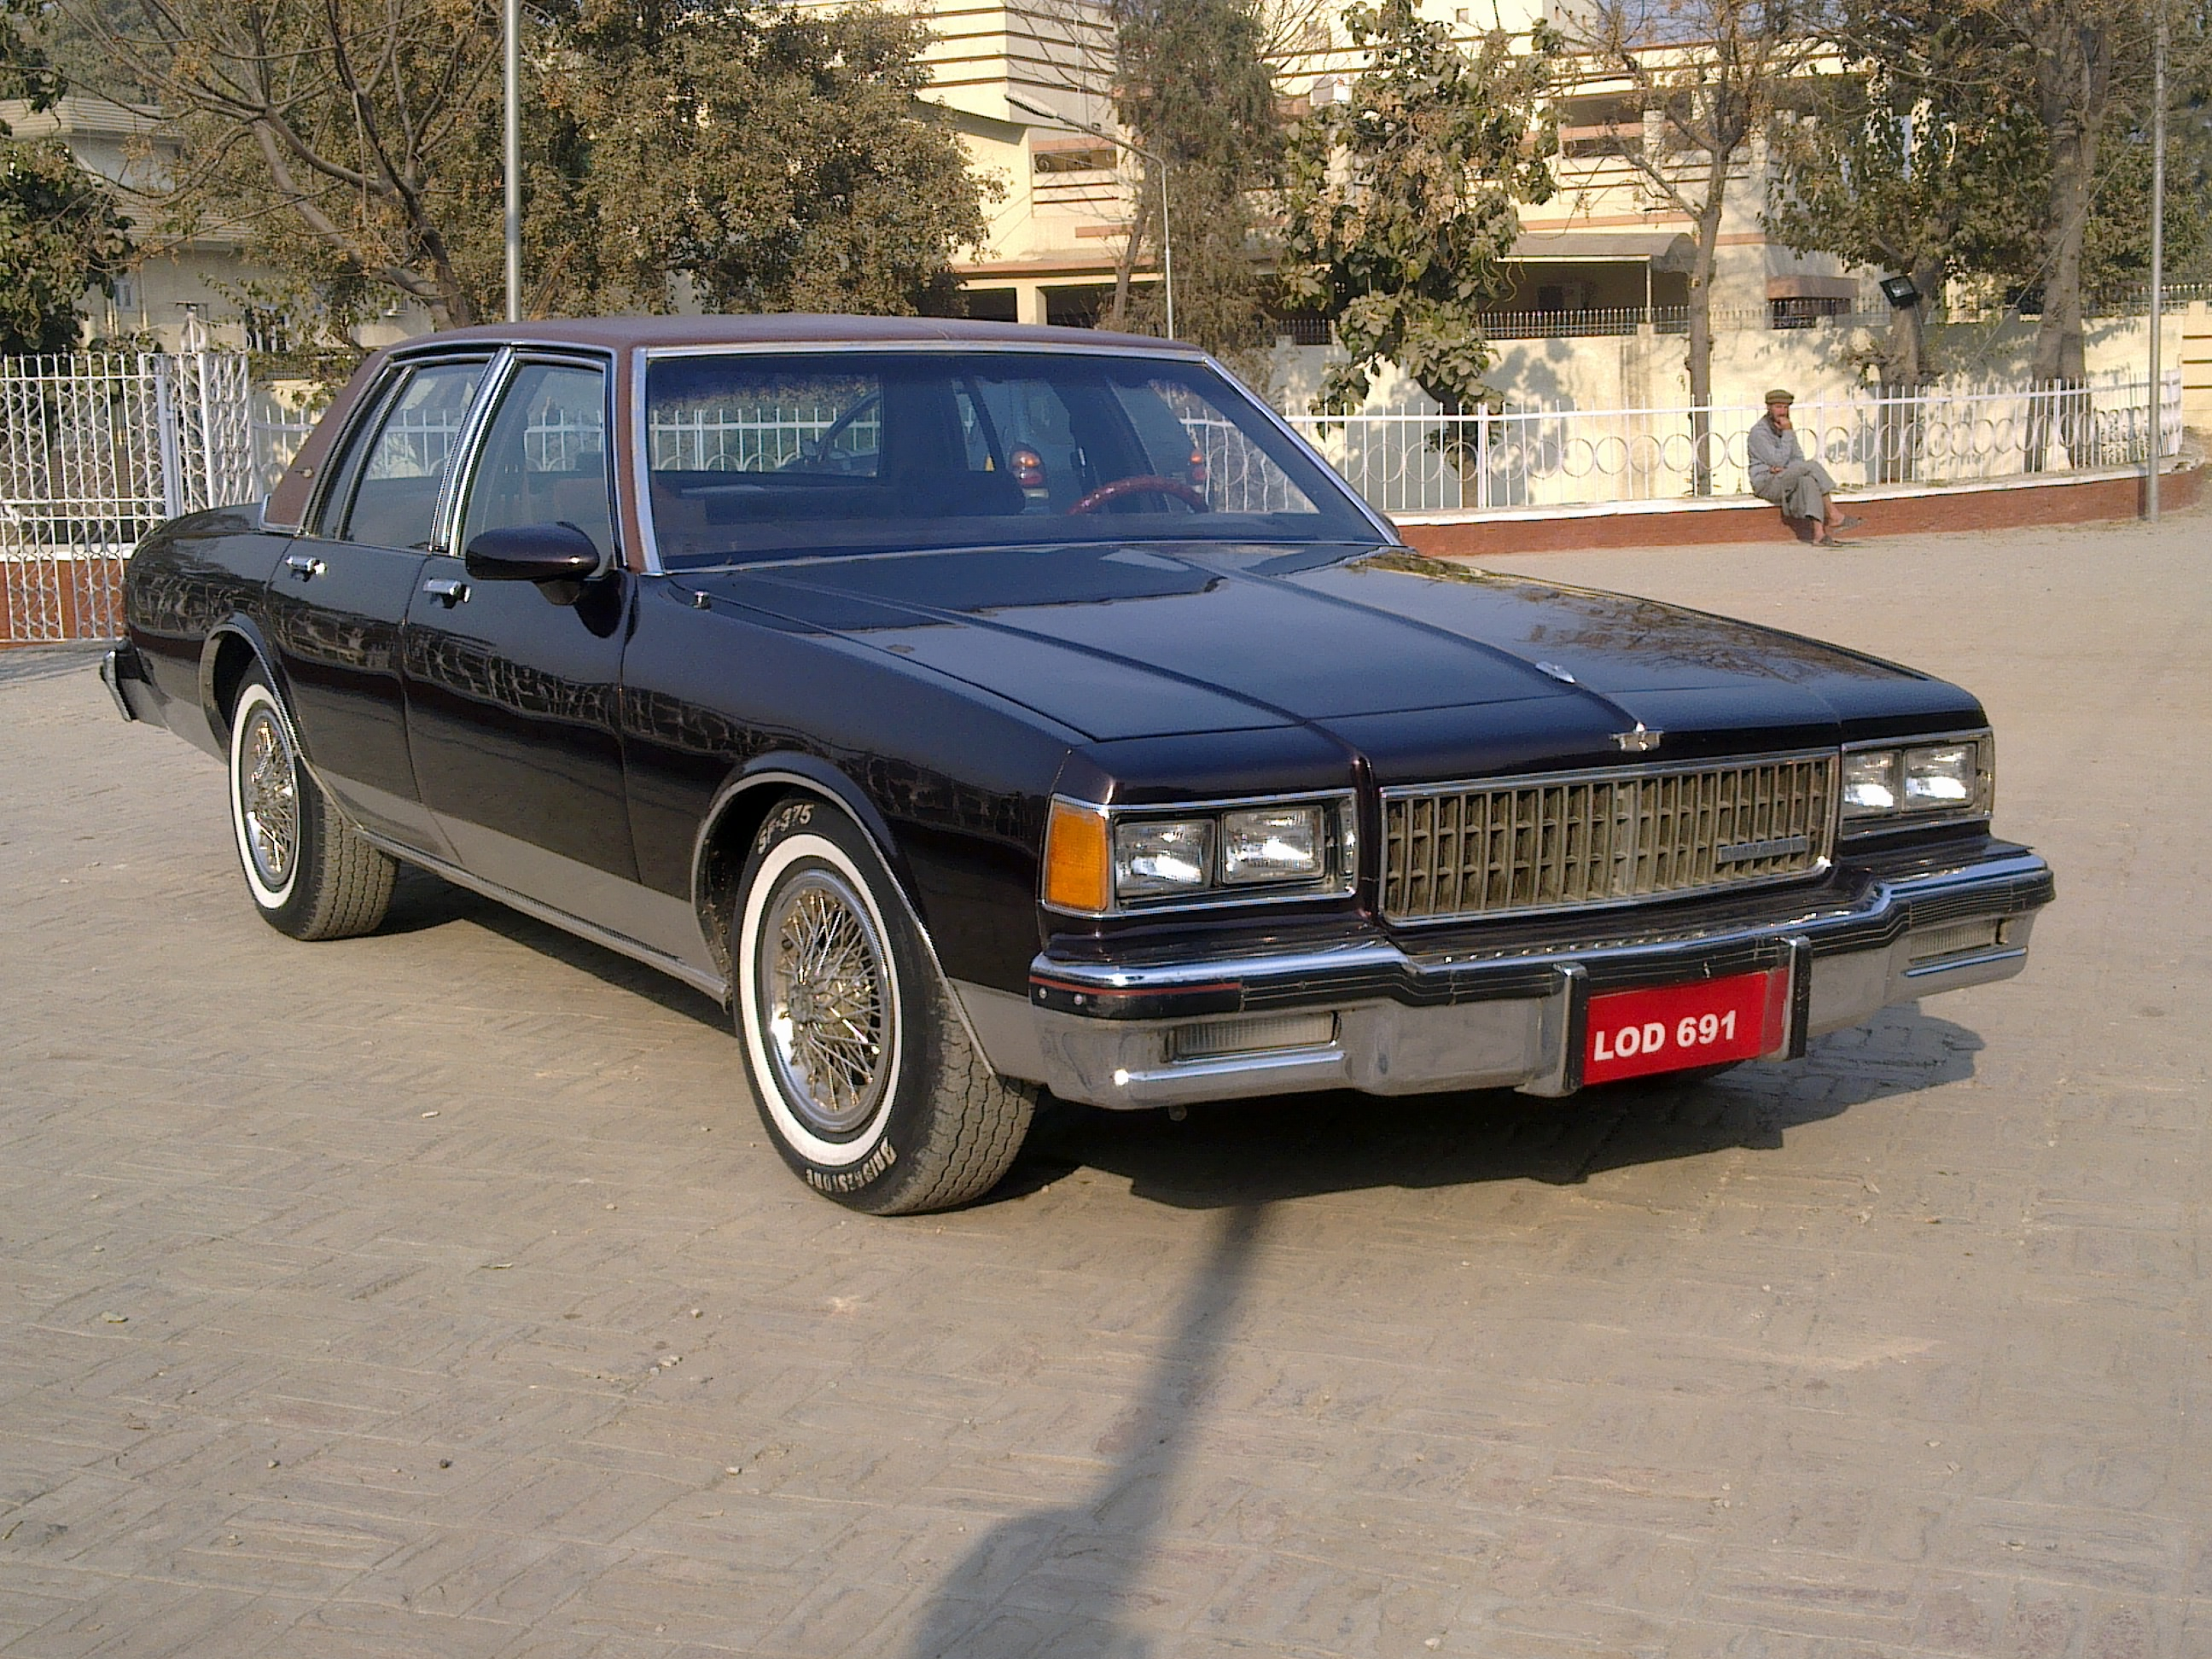 Chevrolet Caprice 1986 Of Imran077 Member Ride 14975